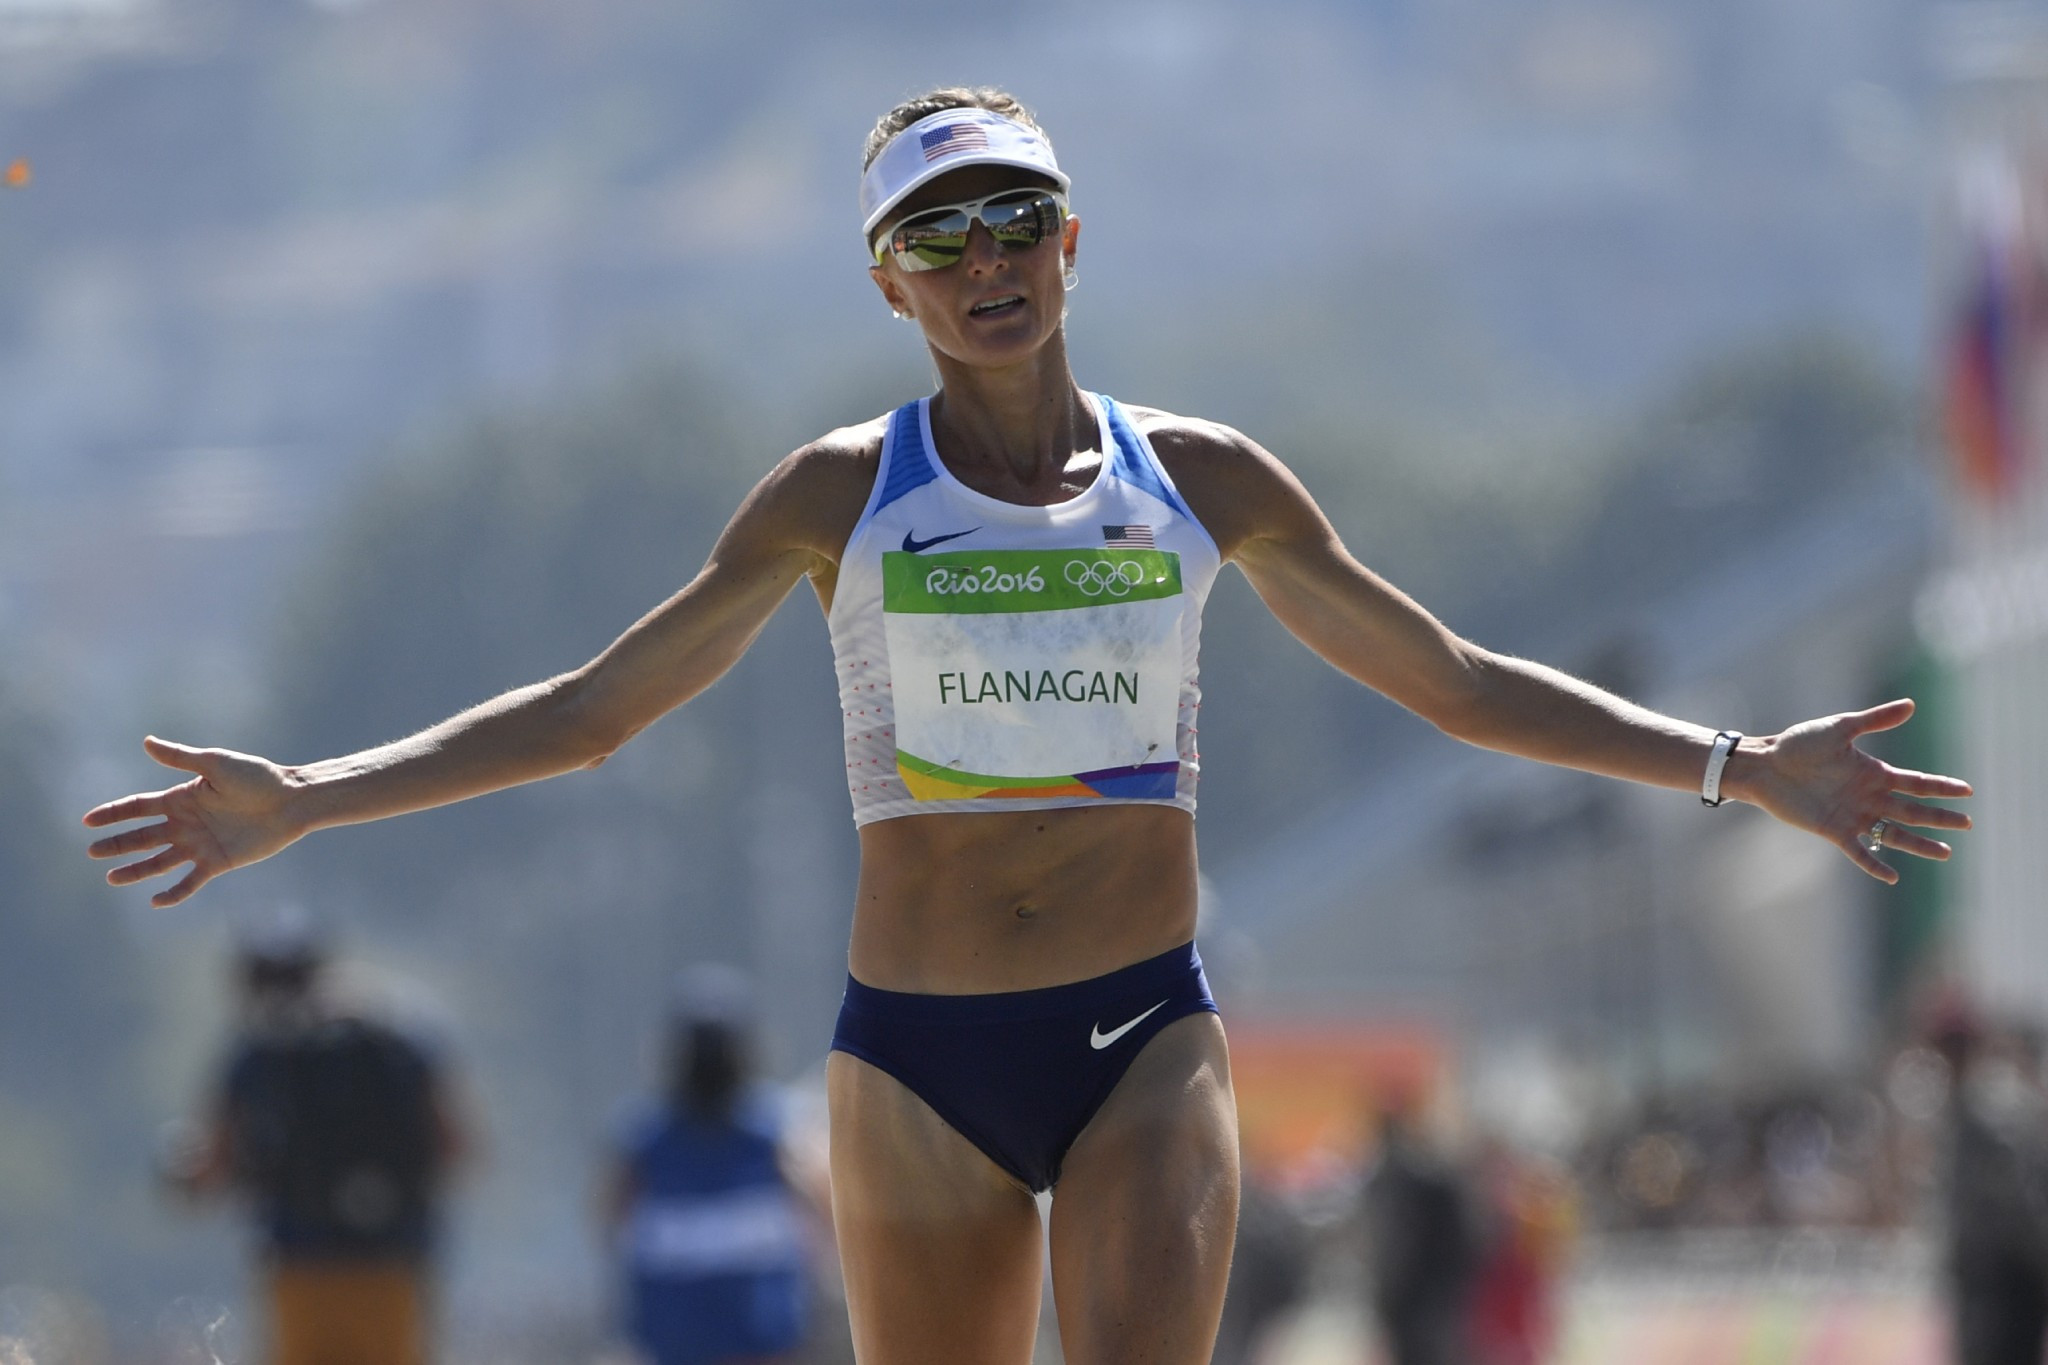 Flanagan happy for home delivery of upgraded Beijing 2008 silver